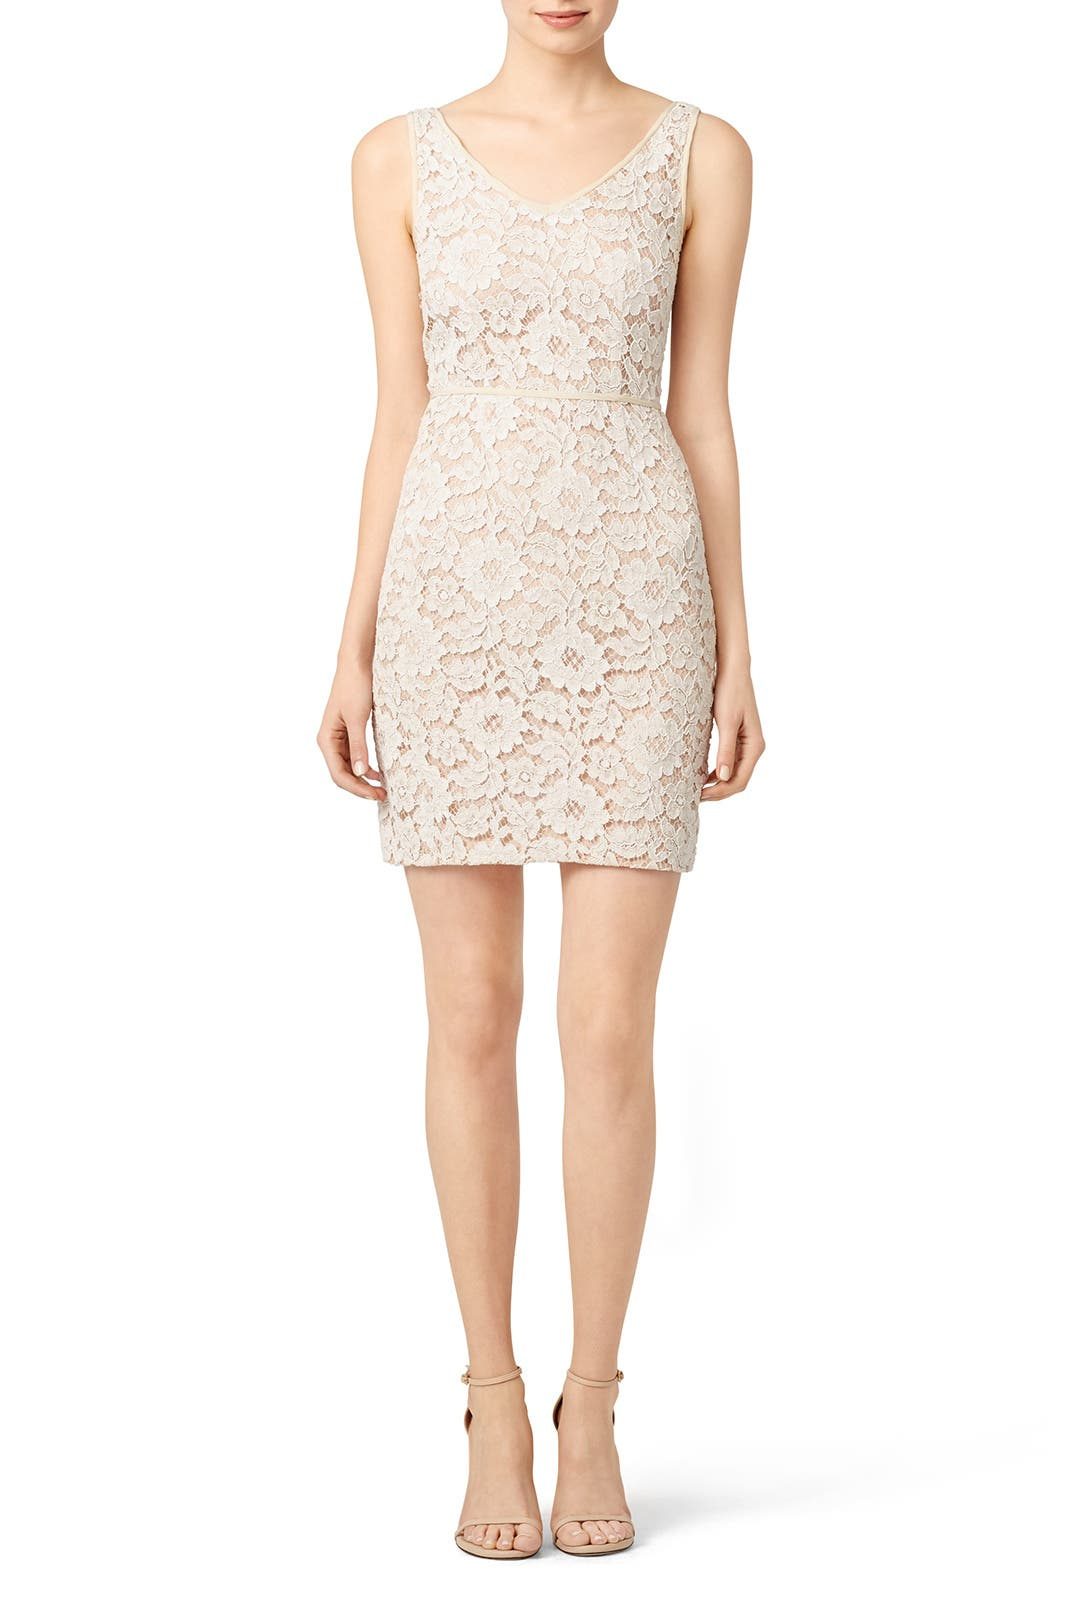 So Sweet Lace Sheath by Moschino